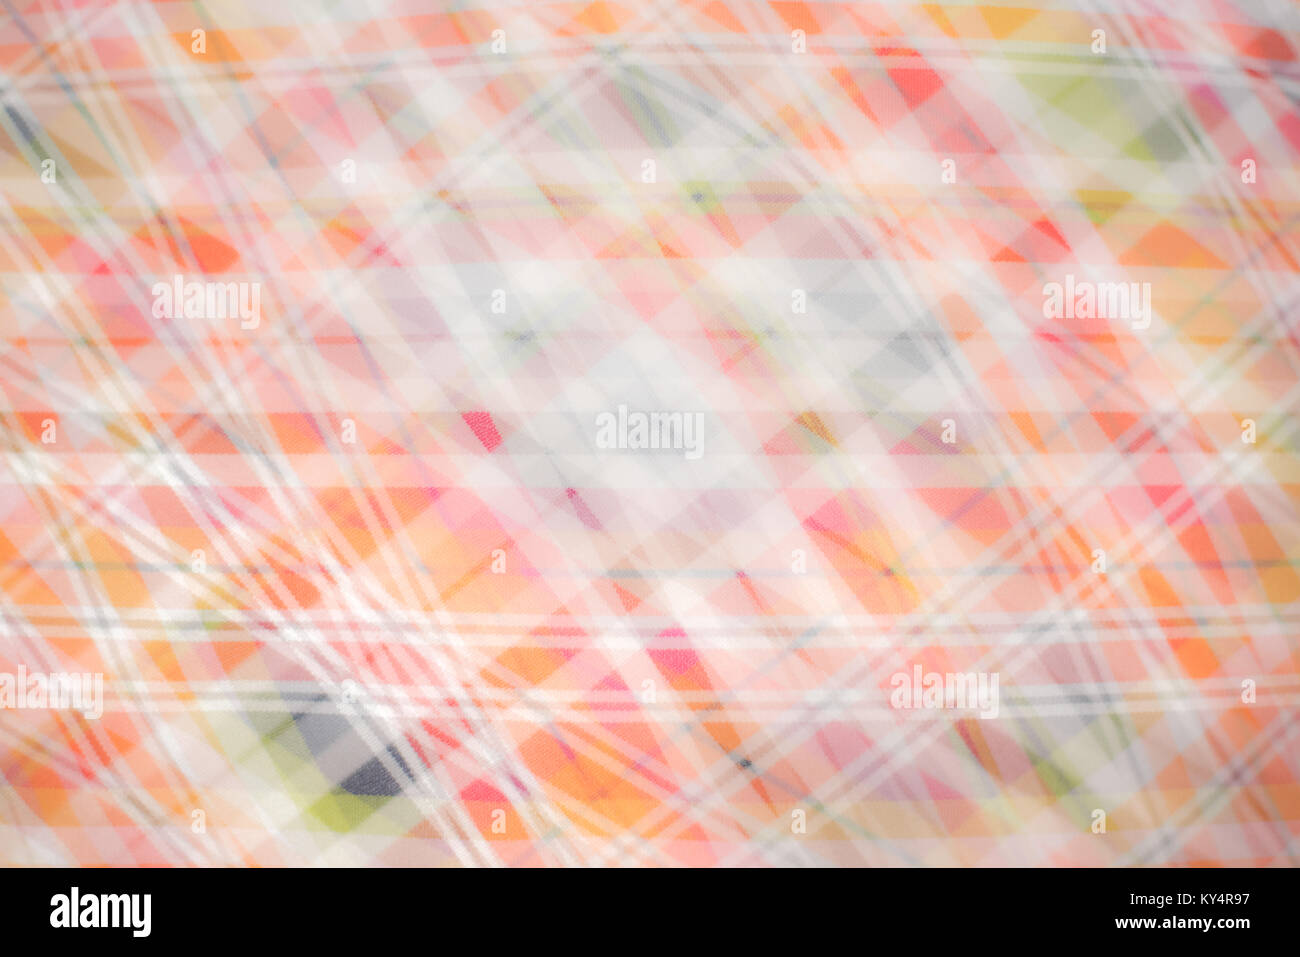 Blurred Colorful Stripes Backdrop Stock Photo